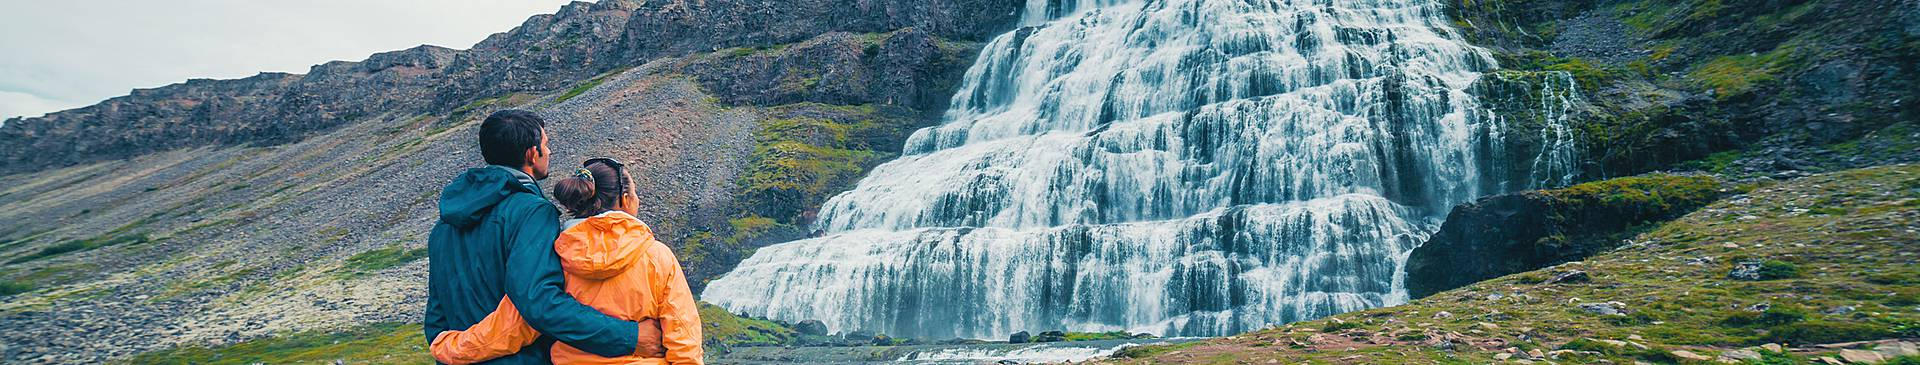 Iceland couples vacations